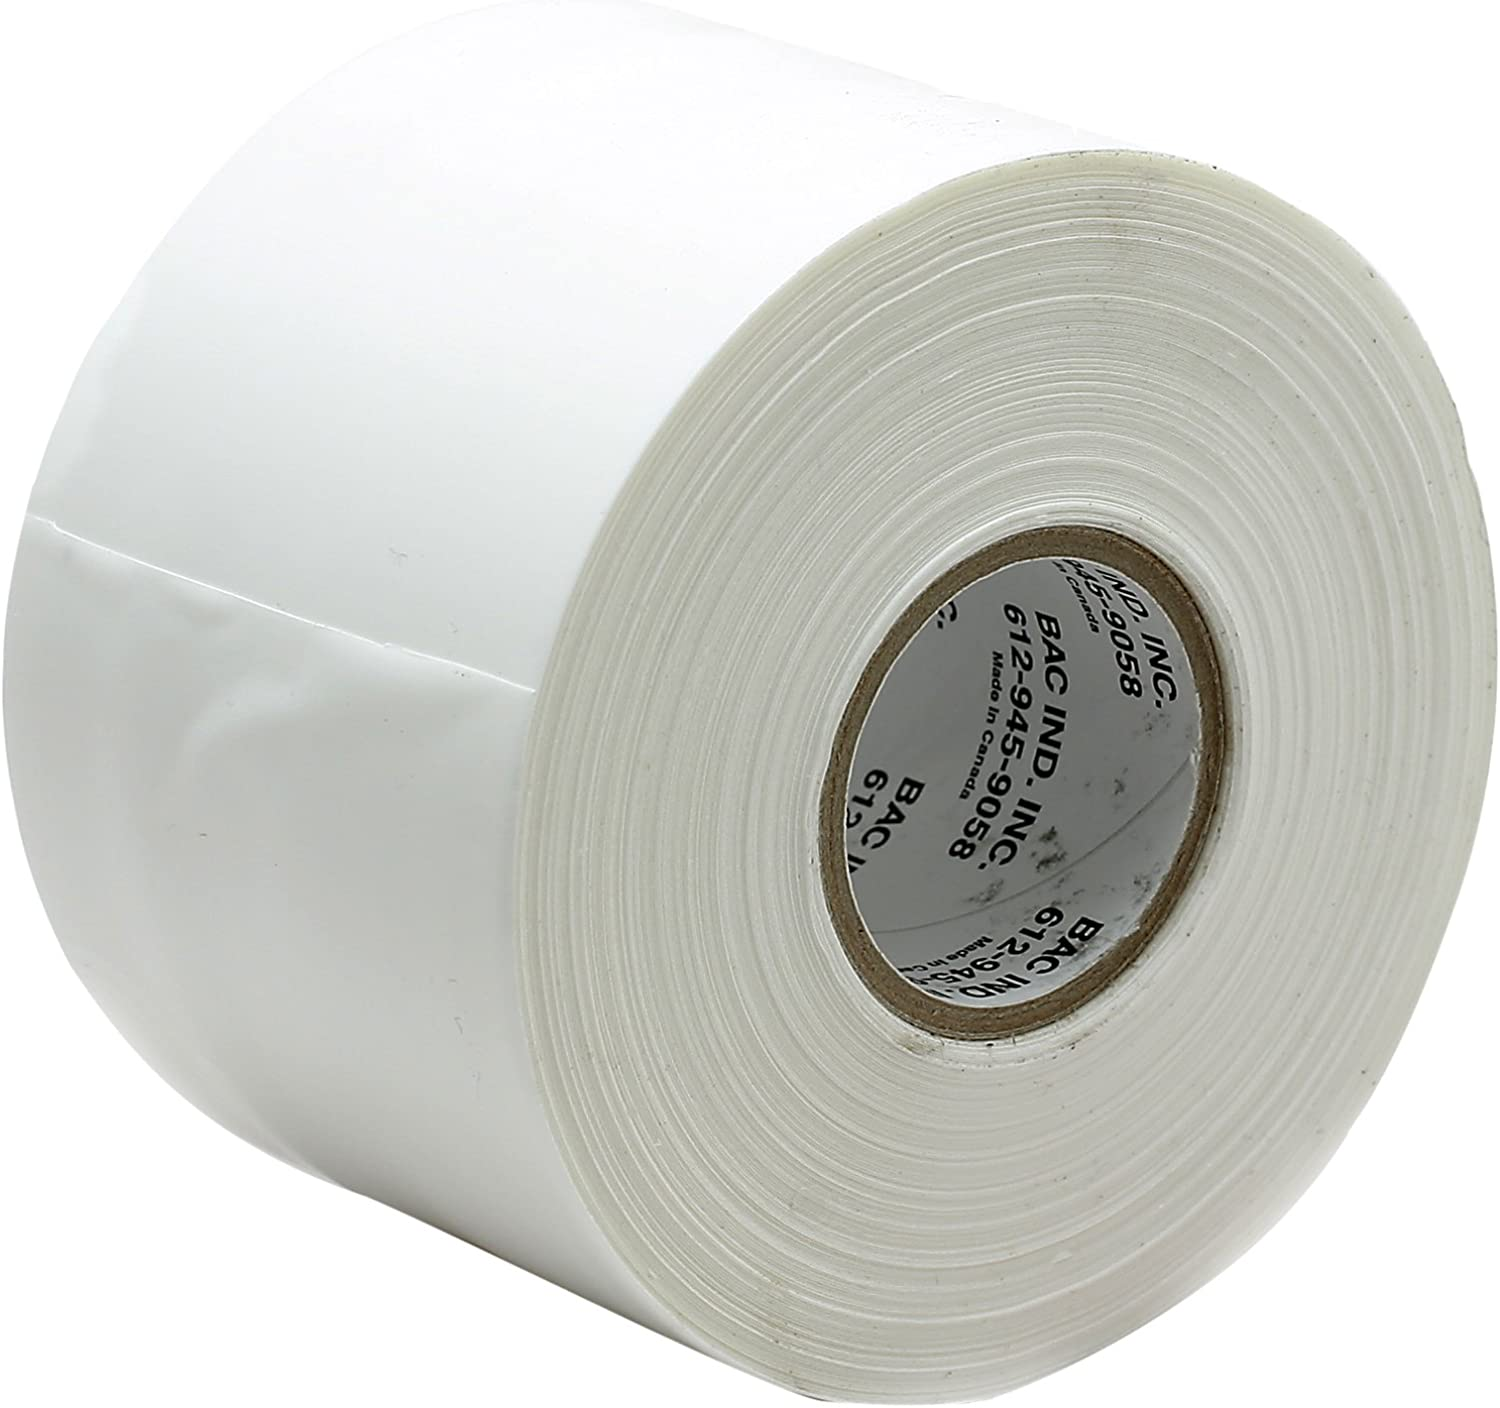 Tarp Tape Tw 108 3 Inch Tarp Tape White Amazon Com